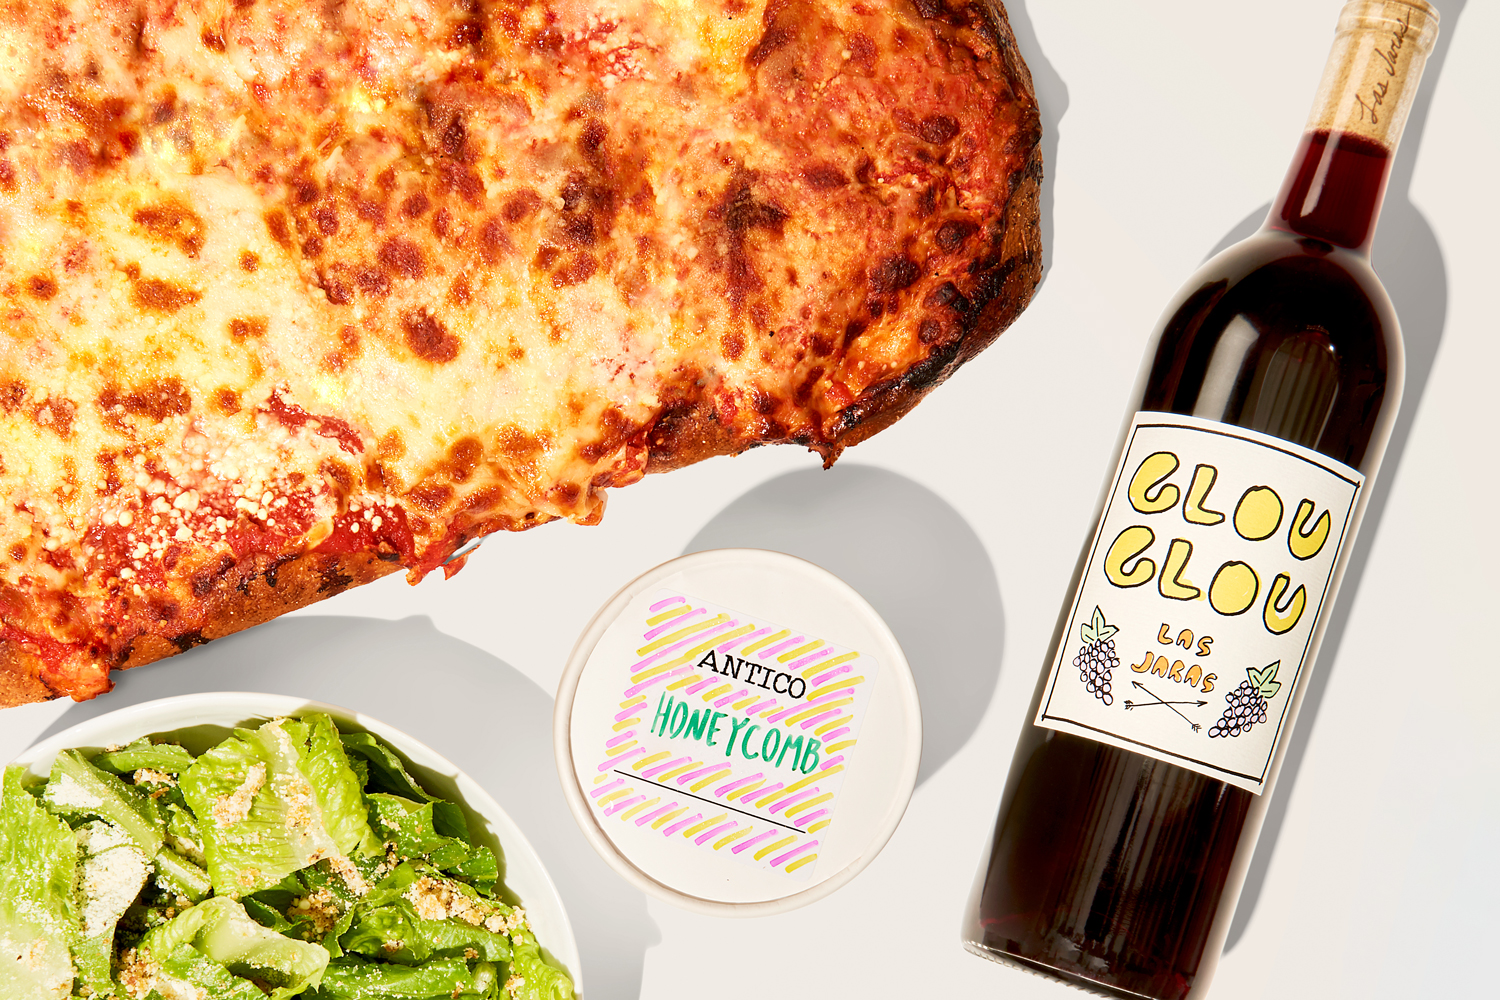 antico meal deal